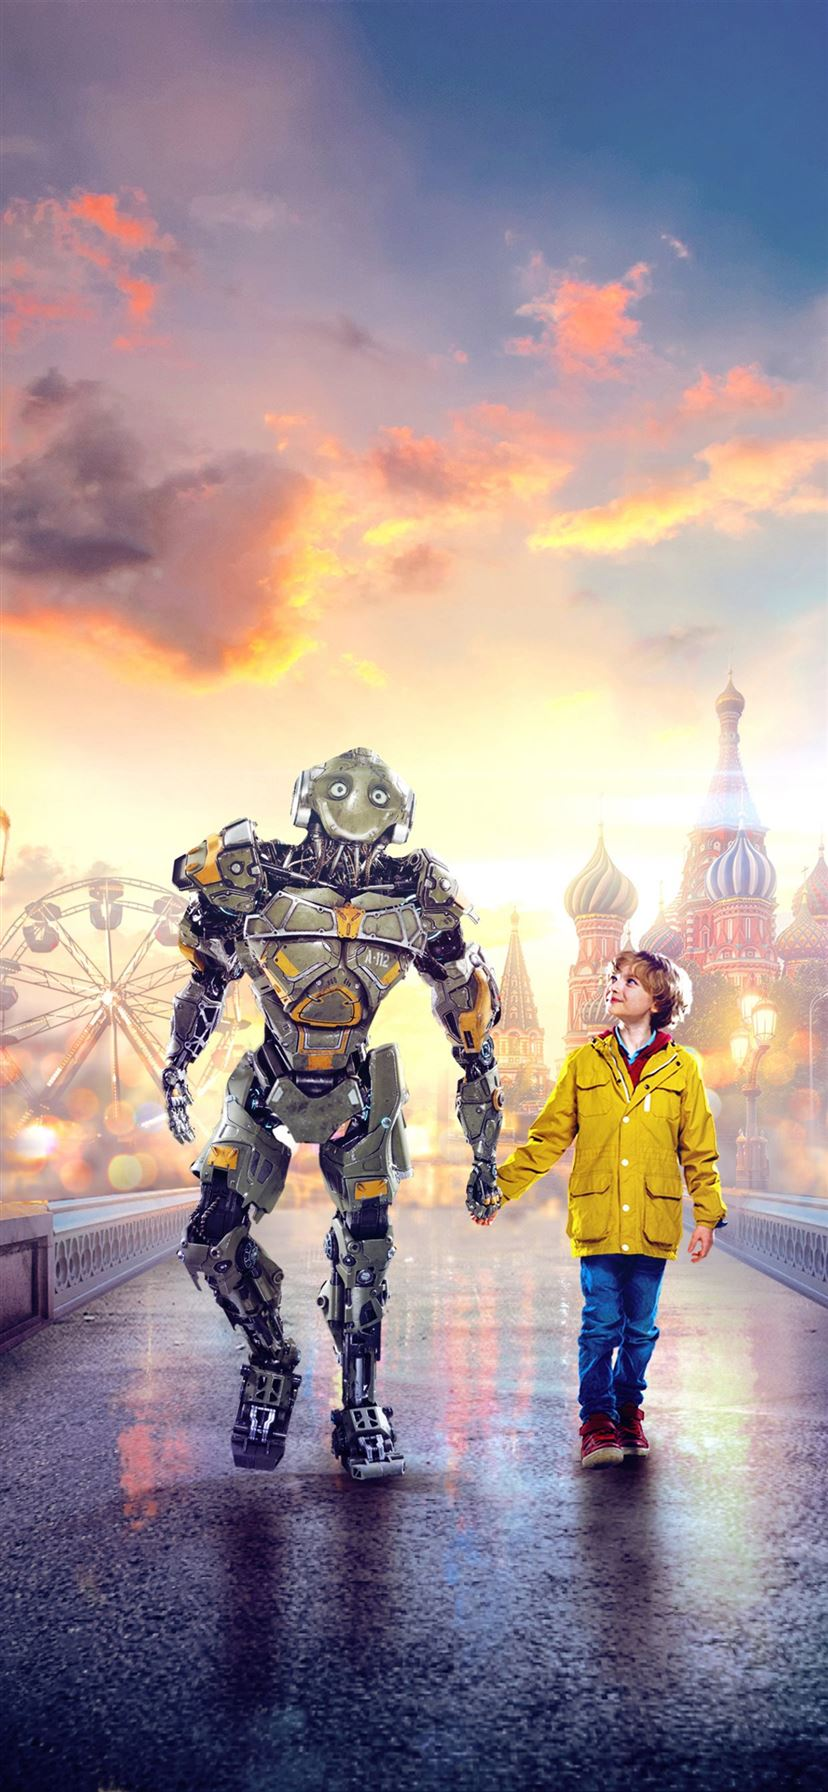 Robo 2019 Movie Iphone Wallpapers Free Download